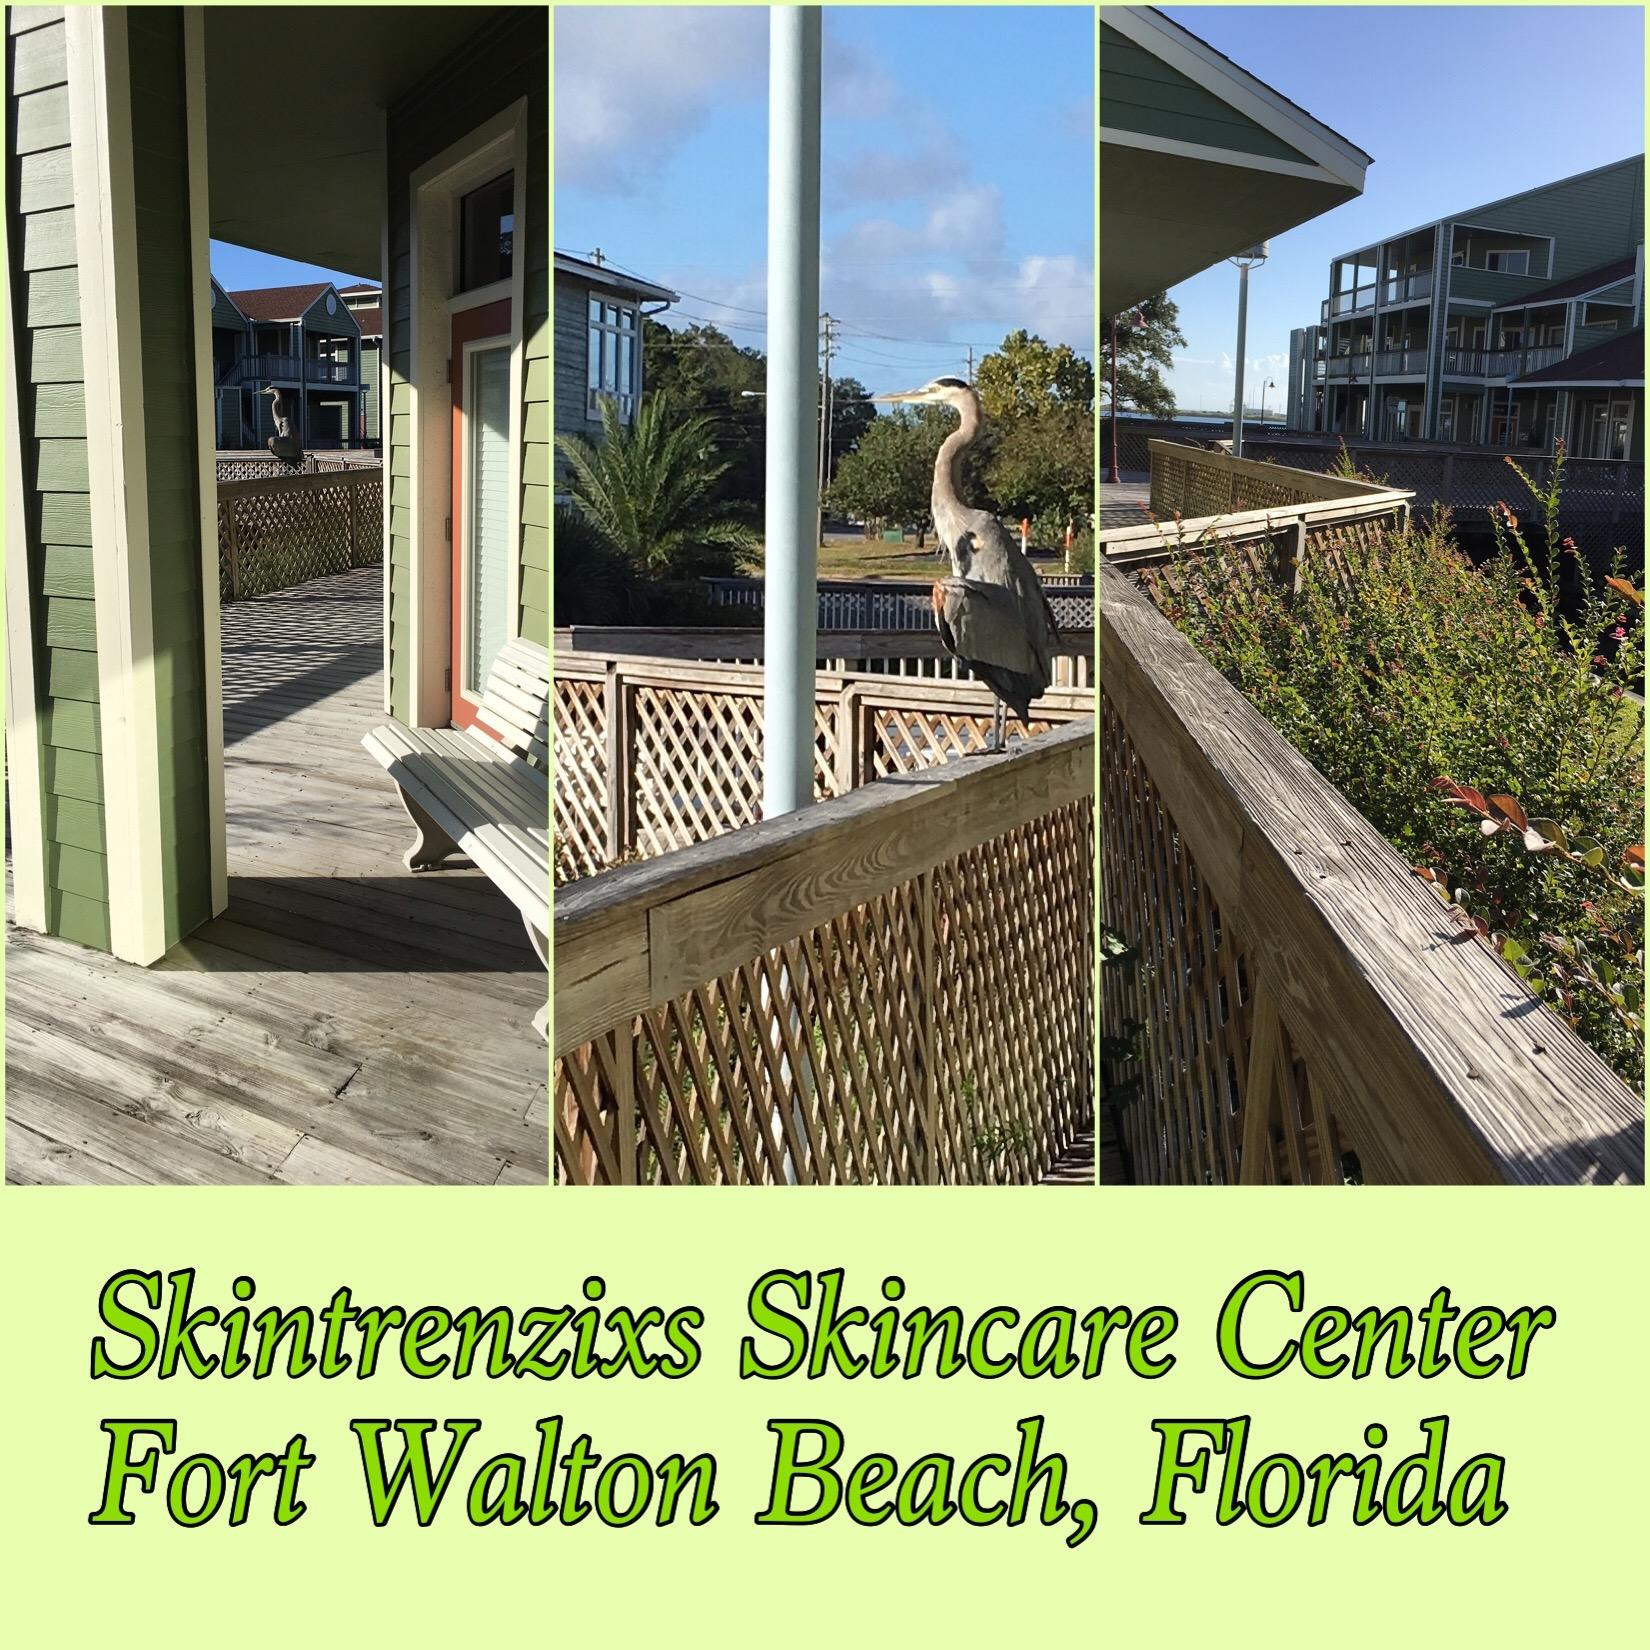 Skintrenzixs Skincare Center Coupons Near Me In Fort